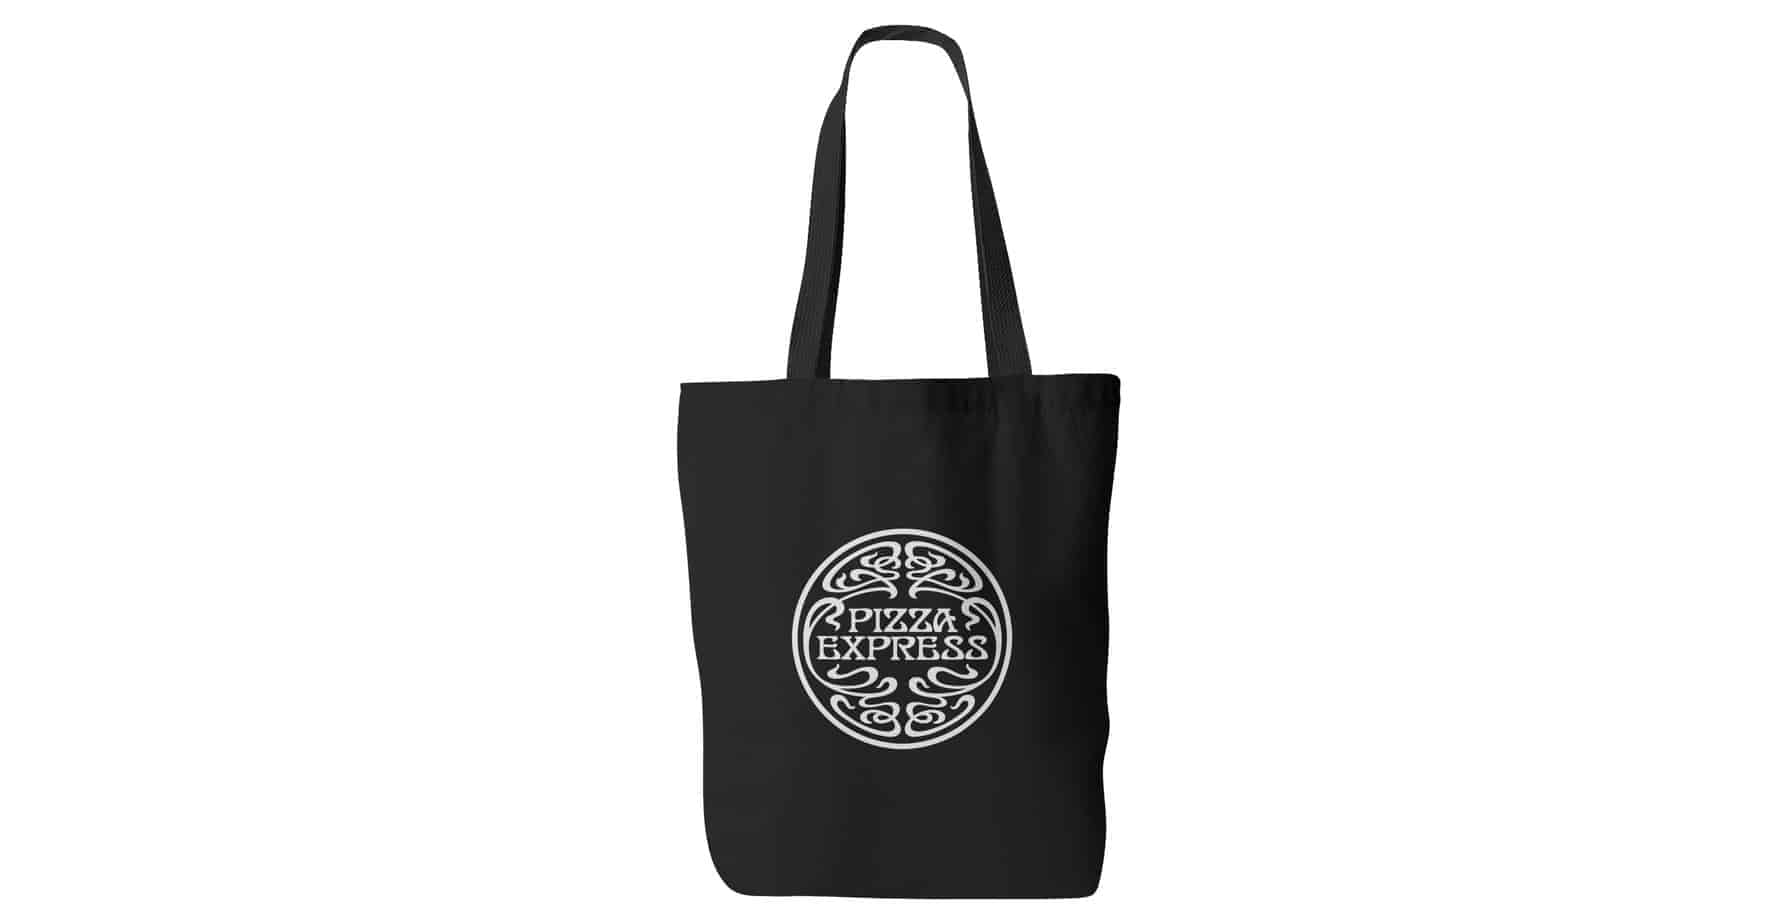 Custom Printed Personalised Cotton Shopper Tote Bags